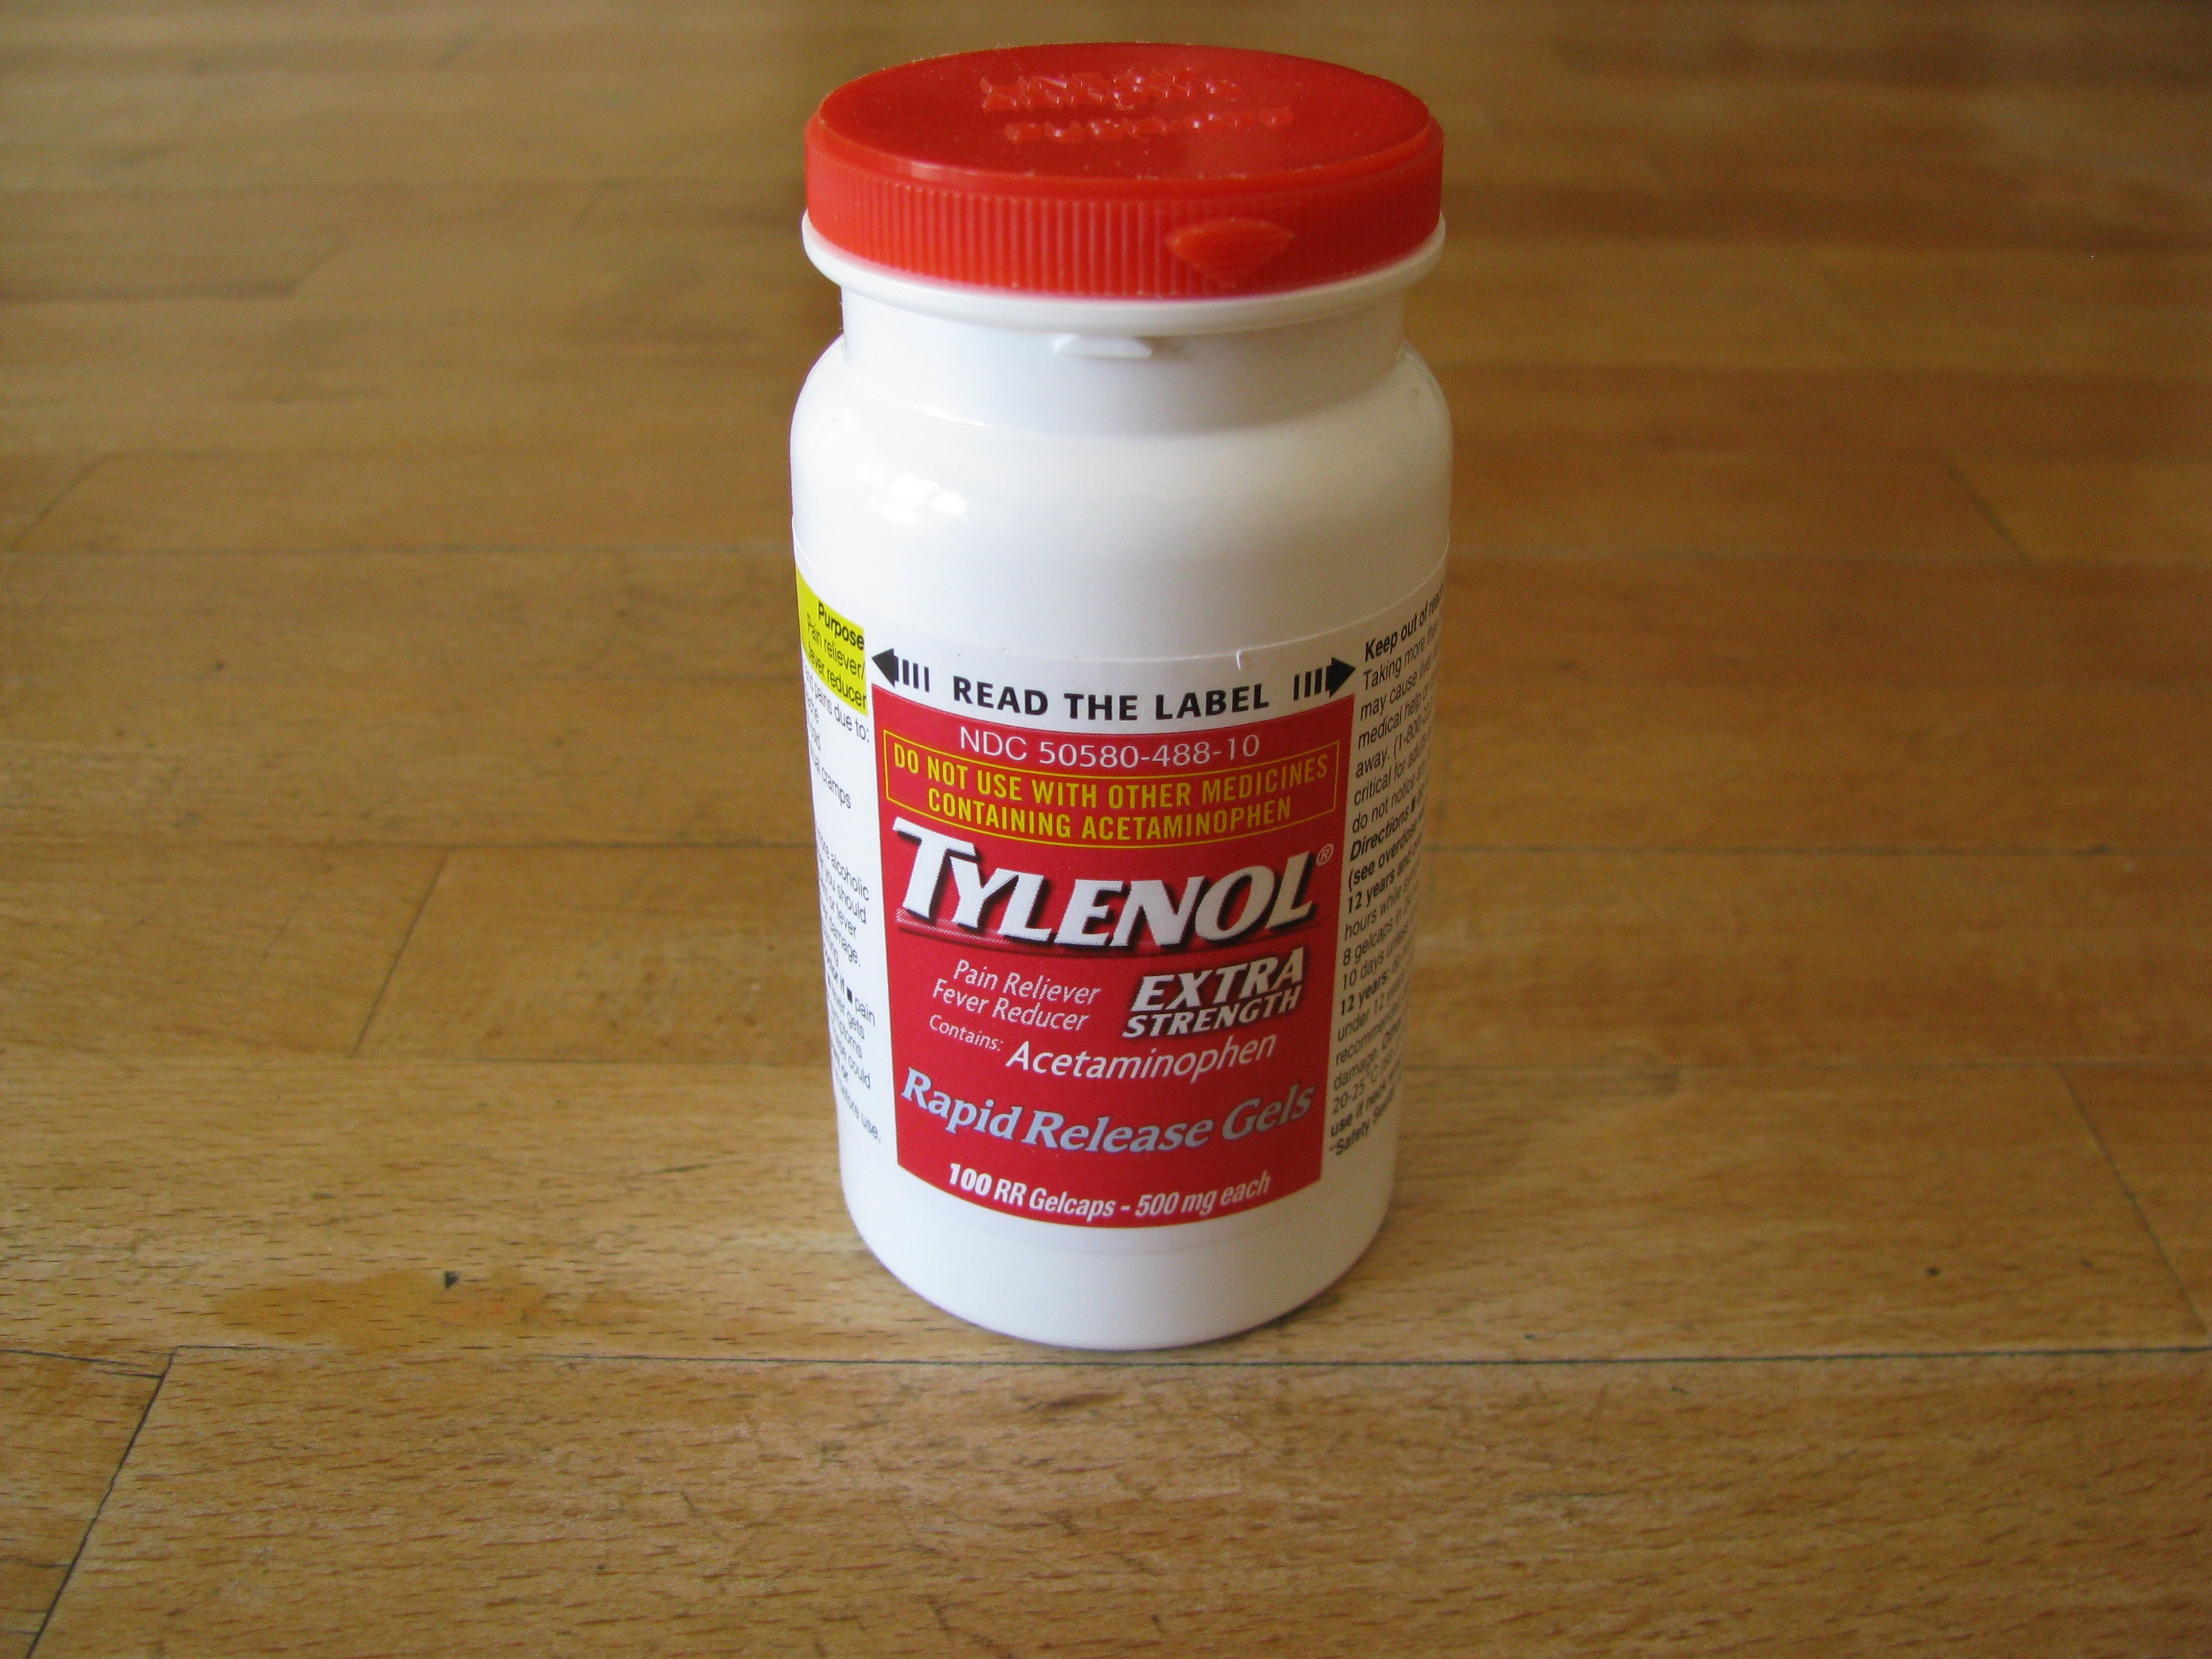 the history of acetaminophen See how far the makers of tylenol® have come to be one of the leading over-the-counter pharmaceutical companies in the world skip to main content español.